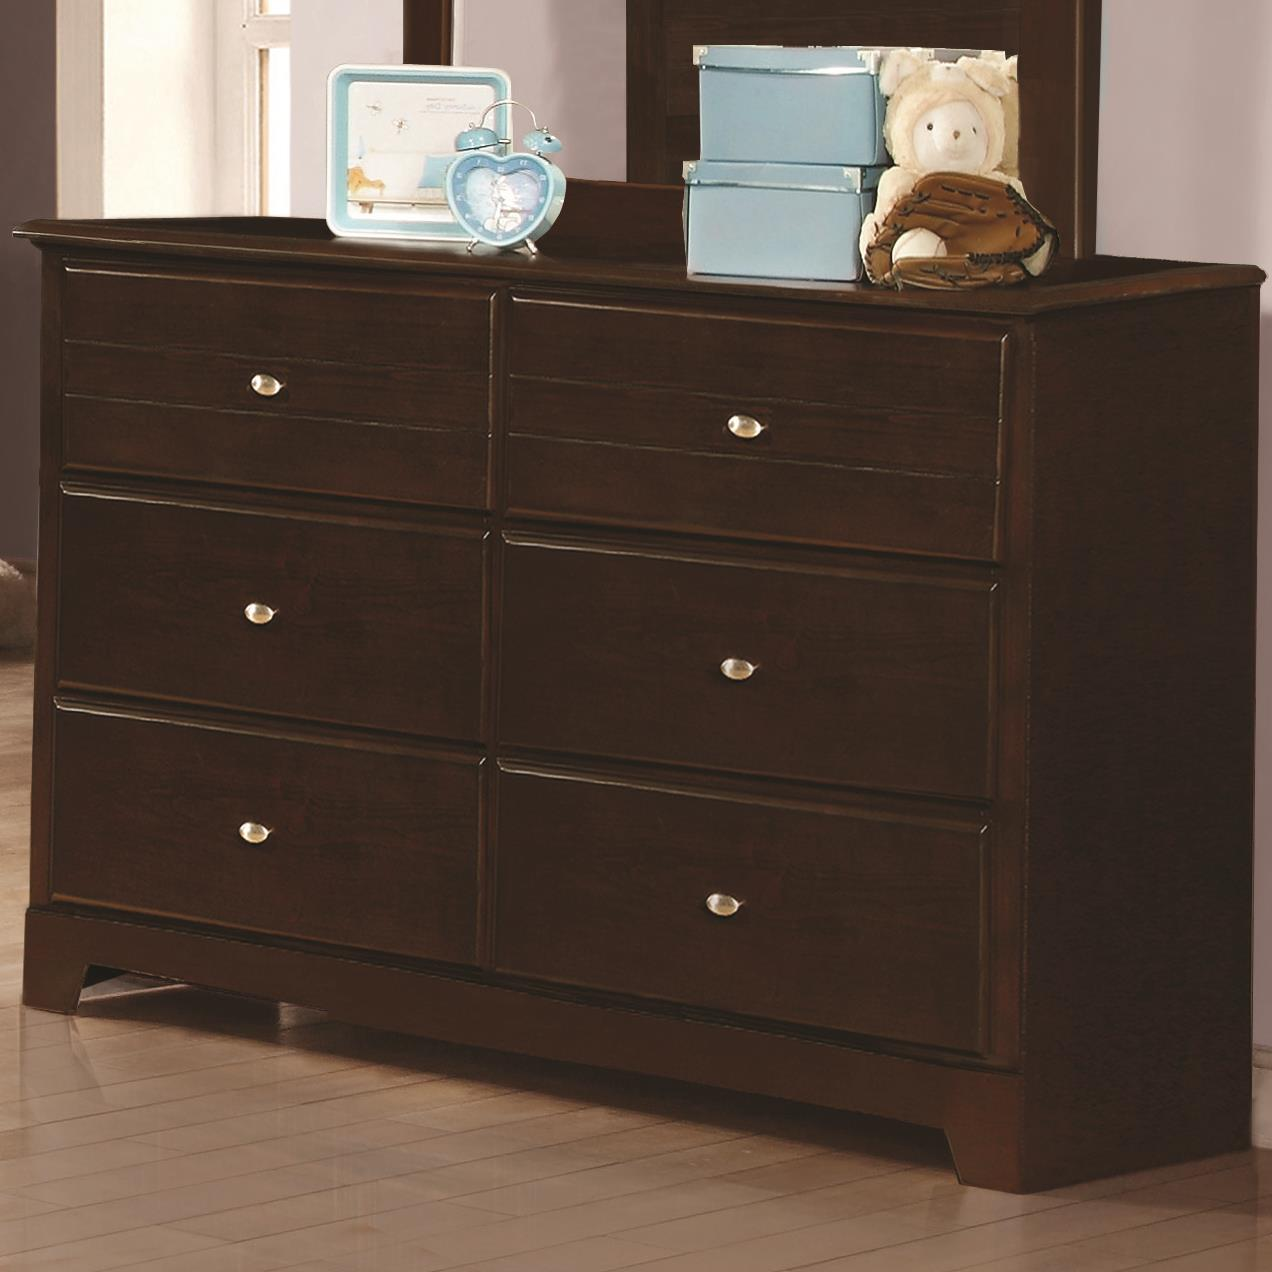 Coaster Ashton Collection Dresser - Item Number: 400773